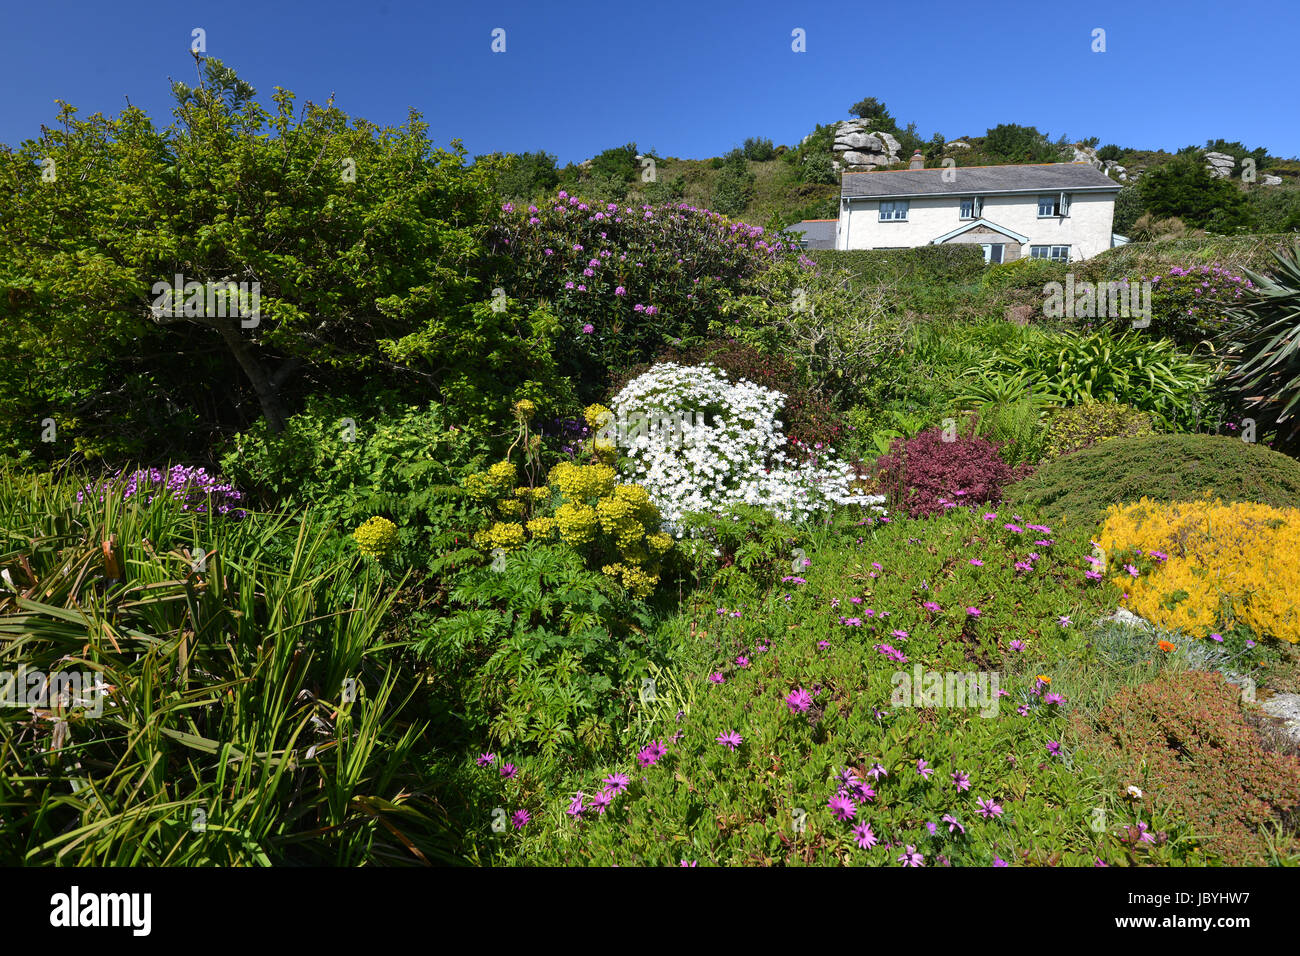 Lush foliage in Bryher, Scilly Islea. - Stock Image